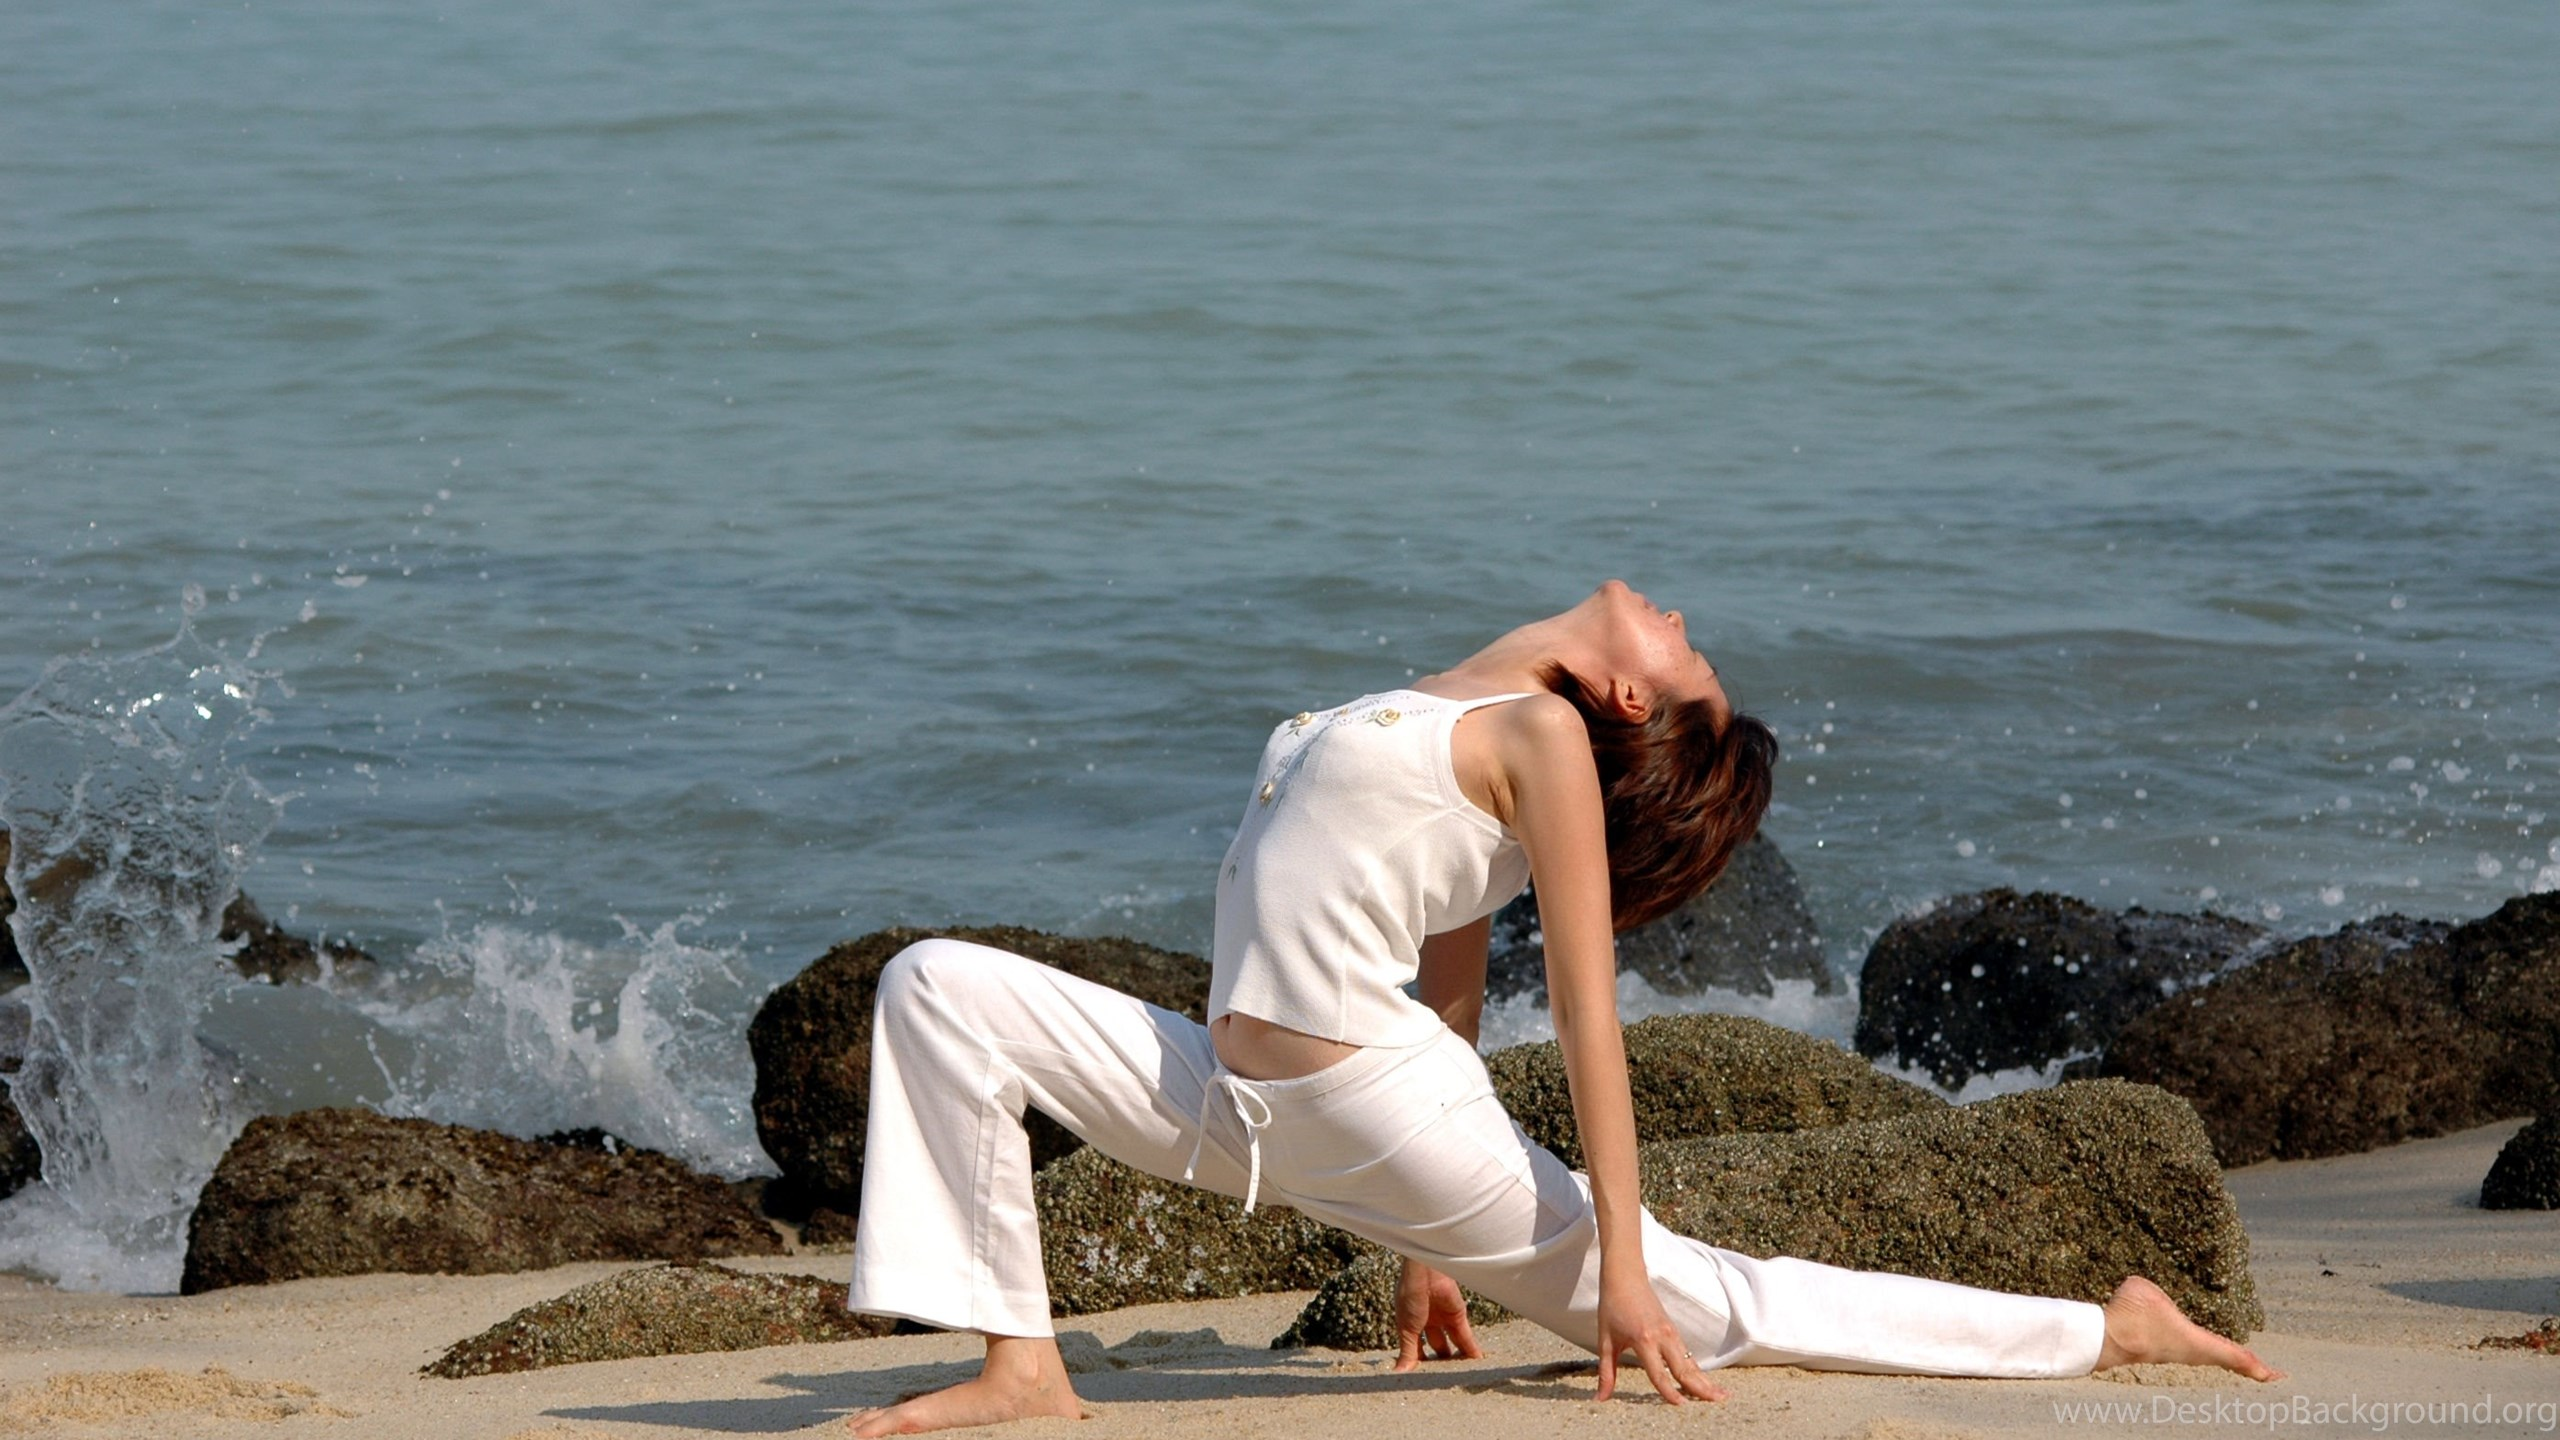 Beach Yoga Girl Widescreen Hd Wallpapers Download Yoga Images Free Desktop Background